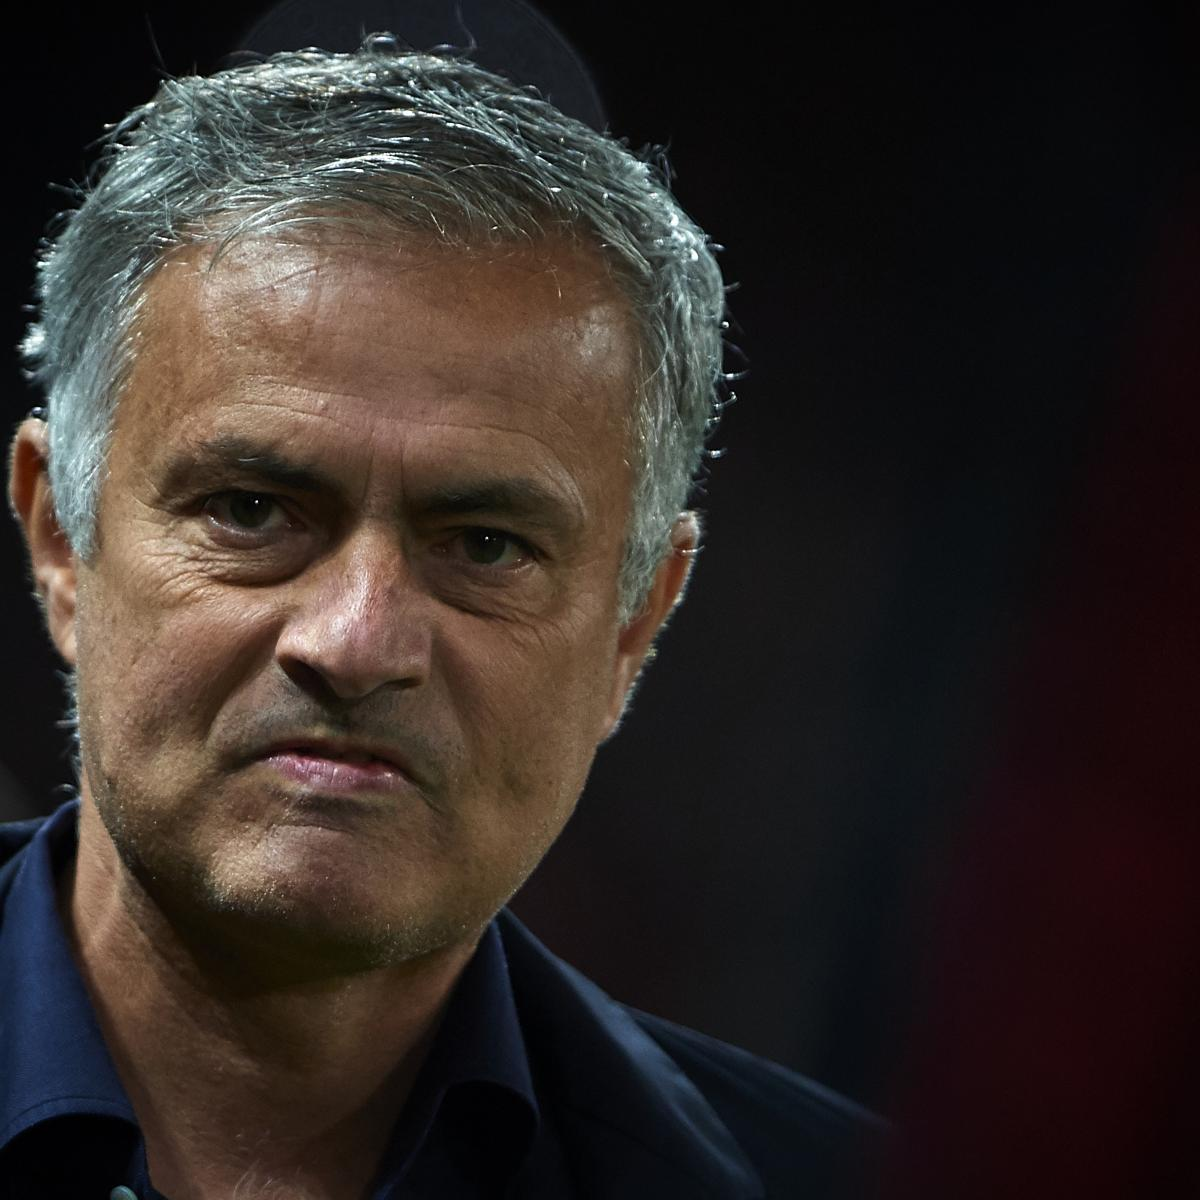 Report: Jose Mourinho to Be Sacked by Manchester United After Newcastle Match